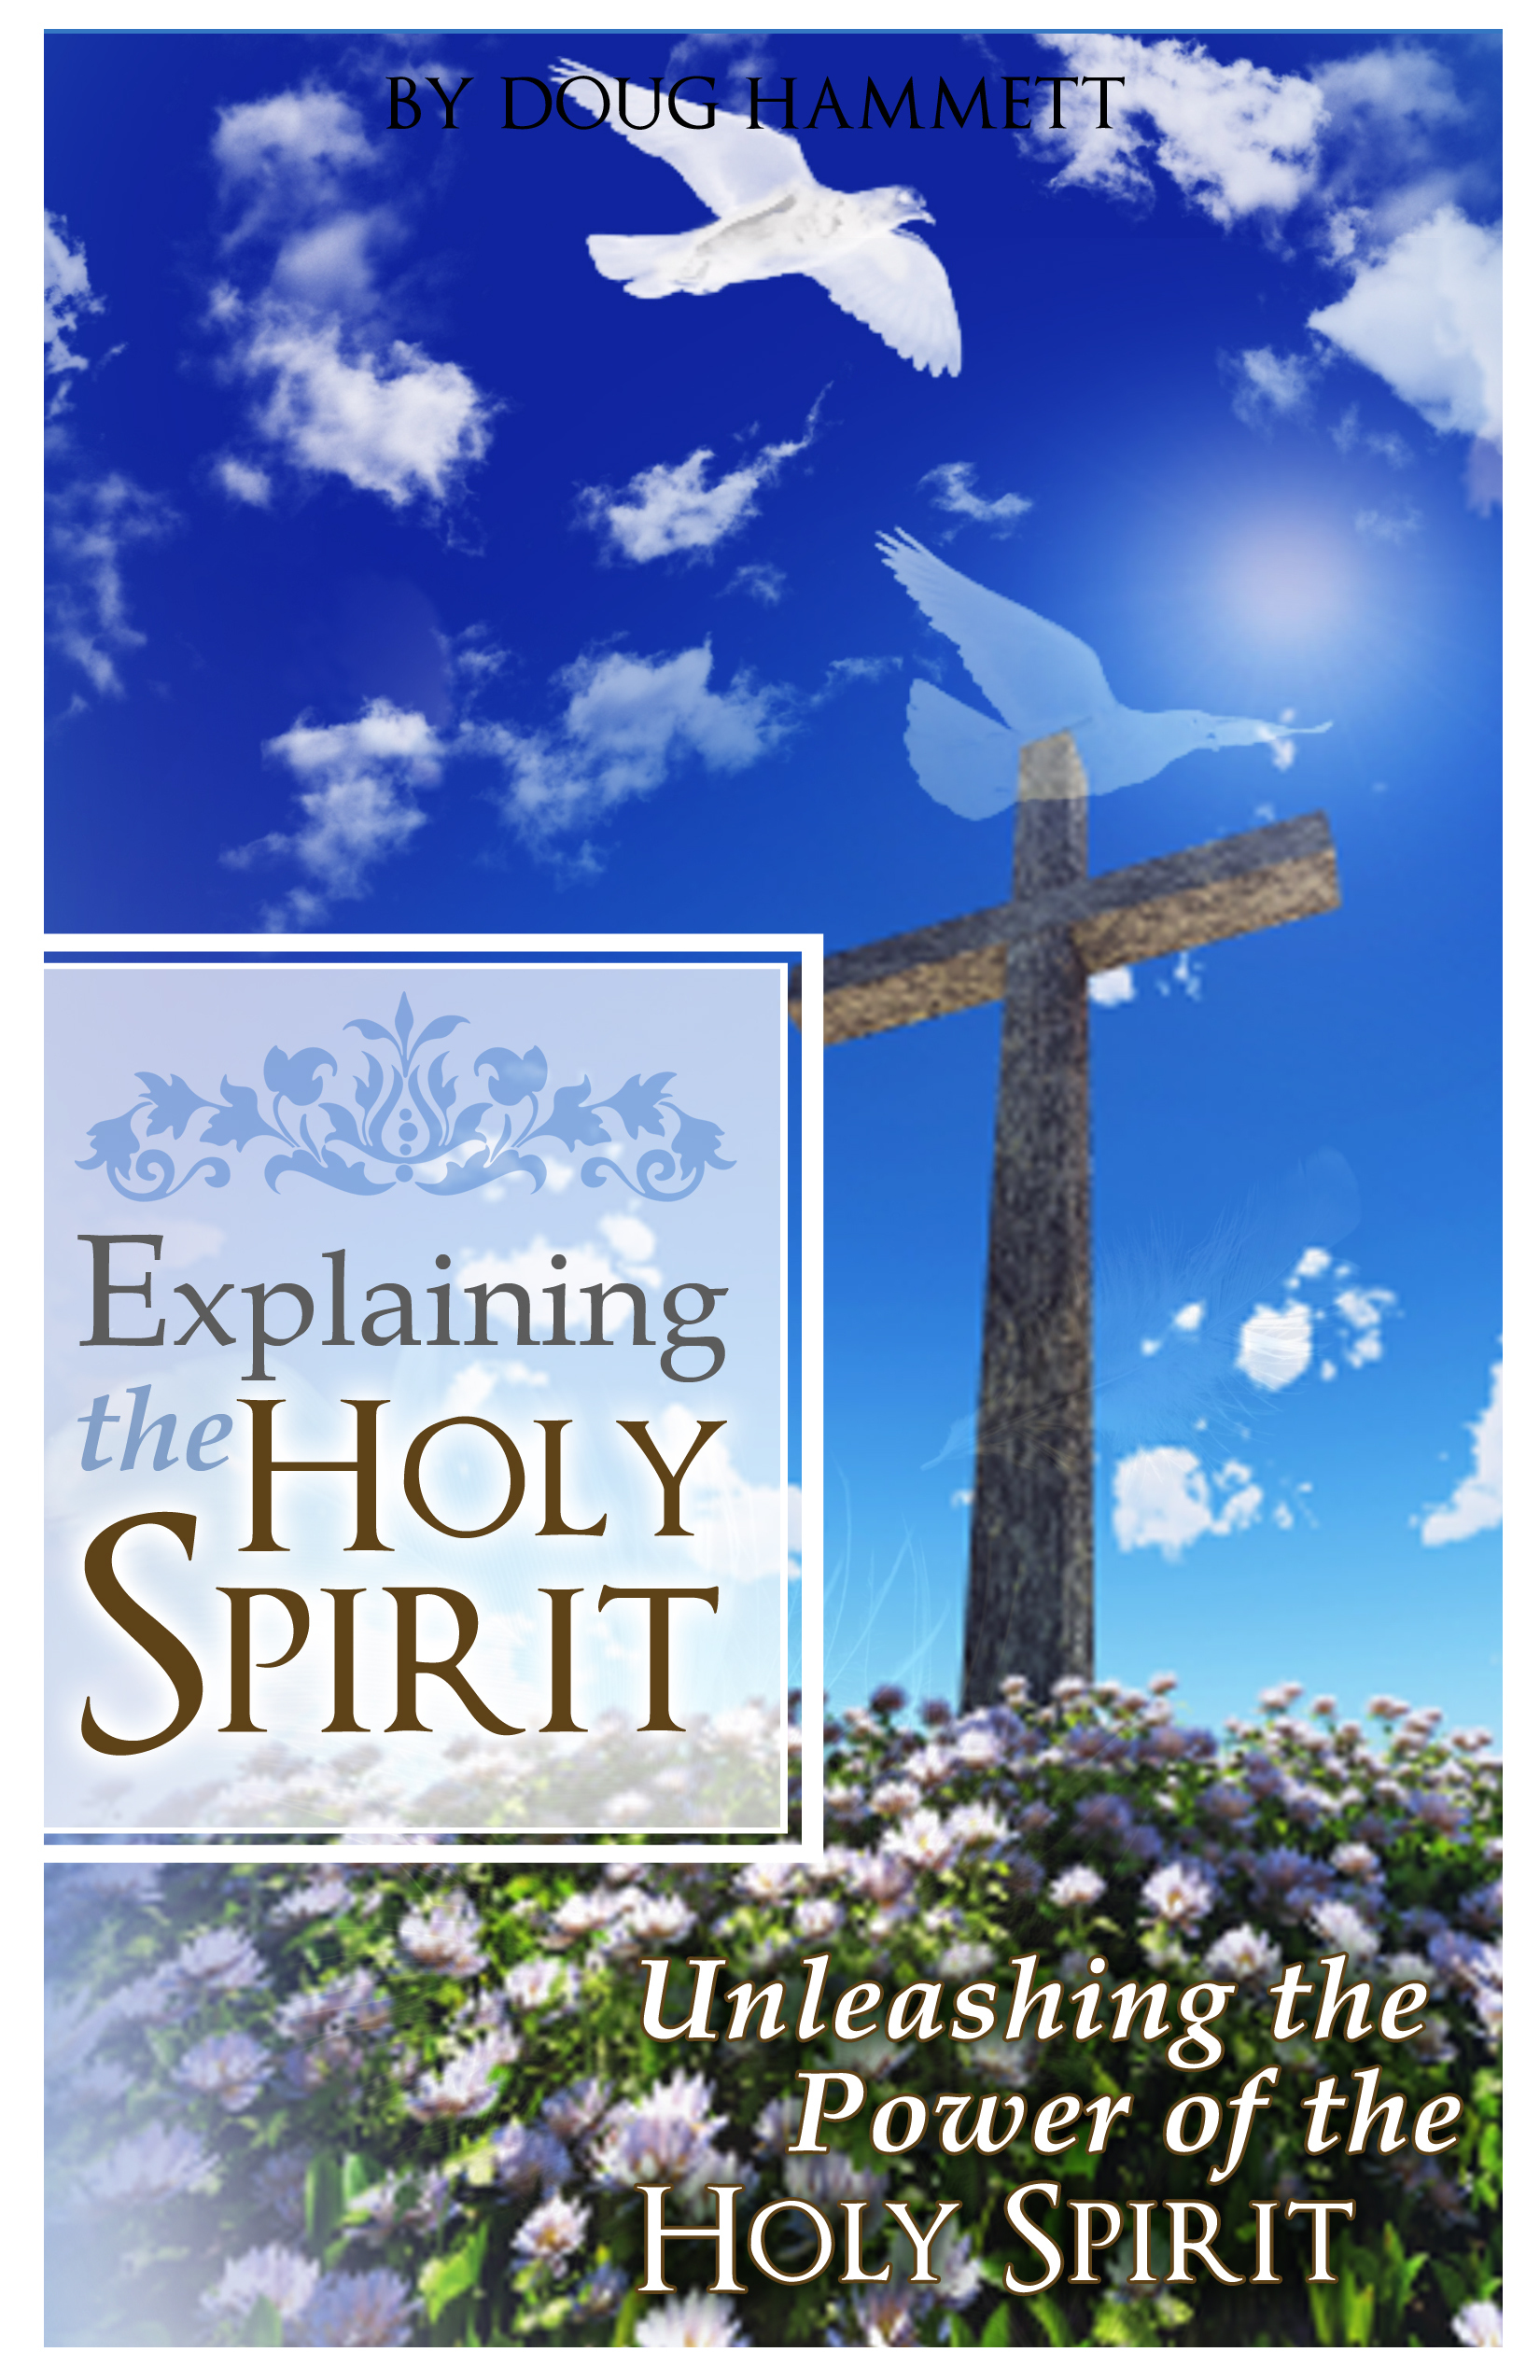 Explaining the Holy Spirit: Unleashing the Power of the Holy Spirit